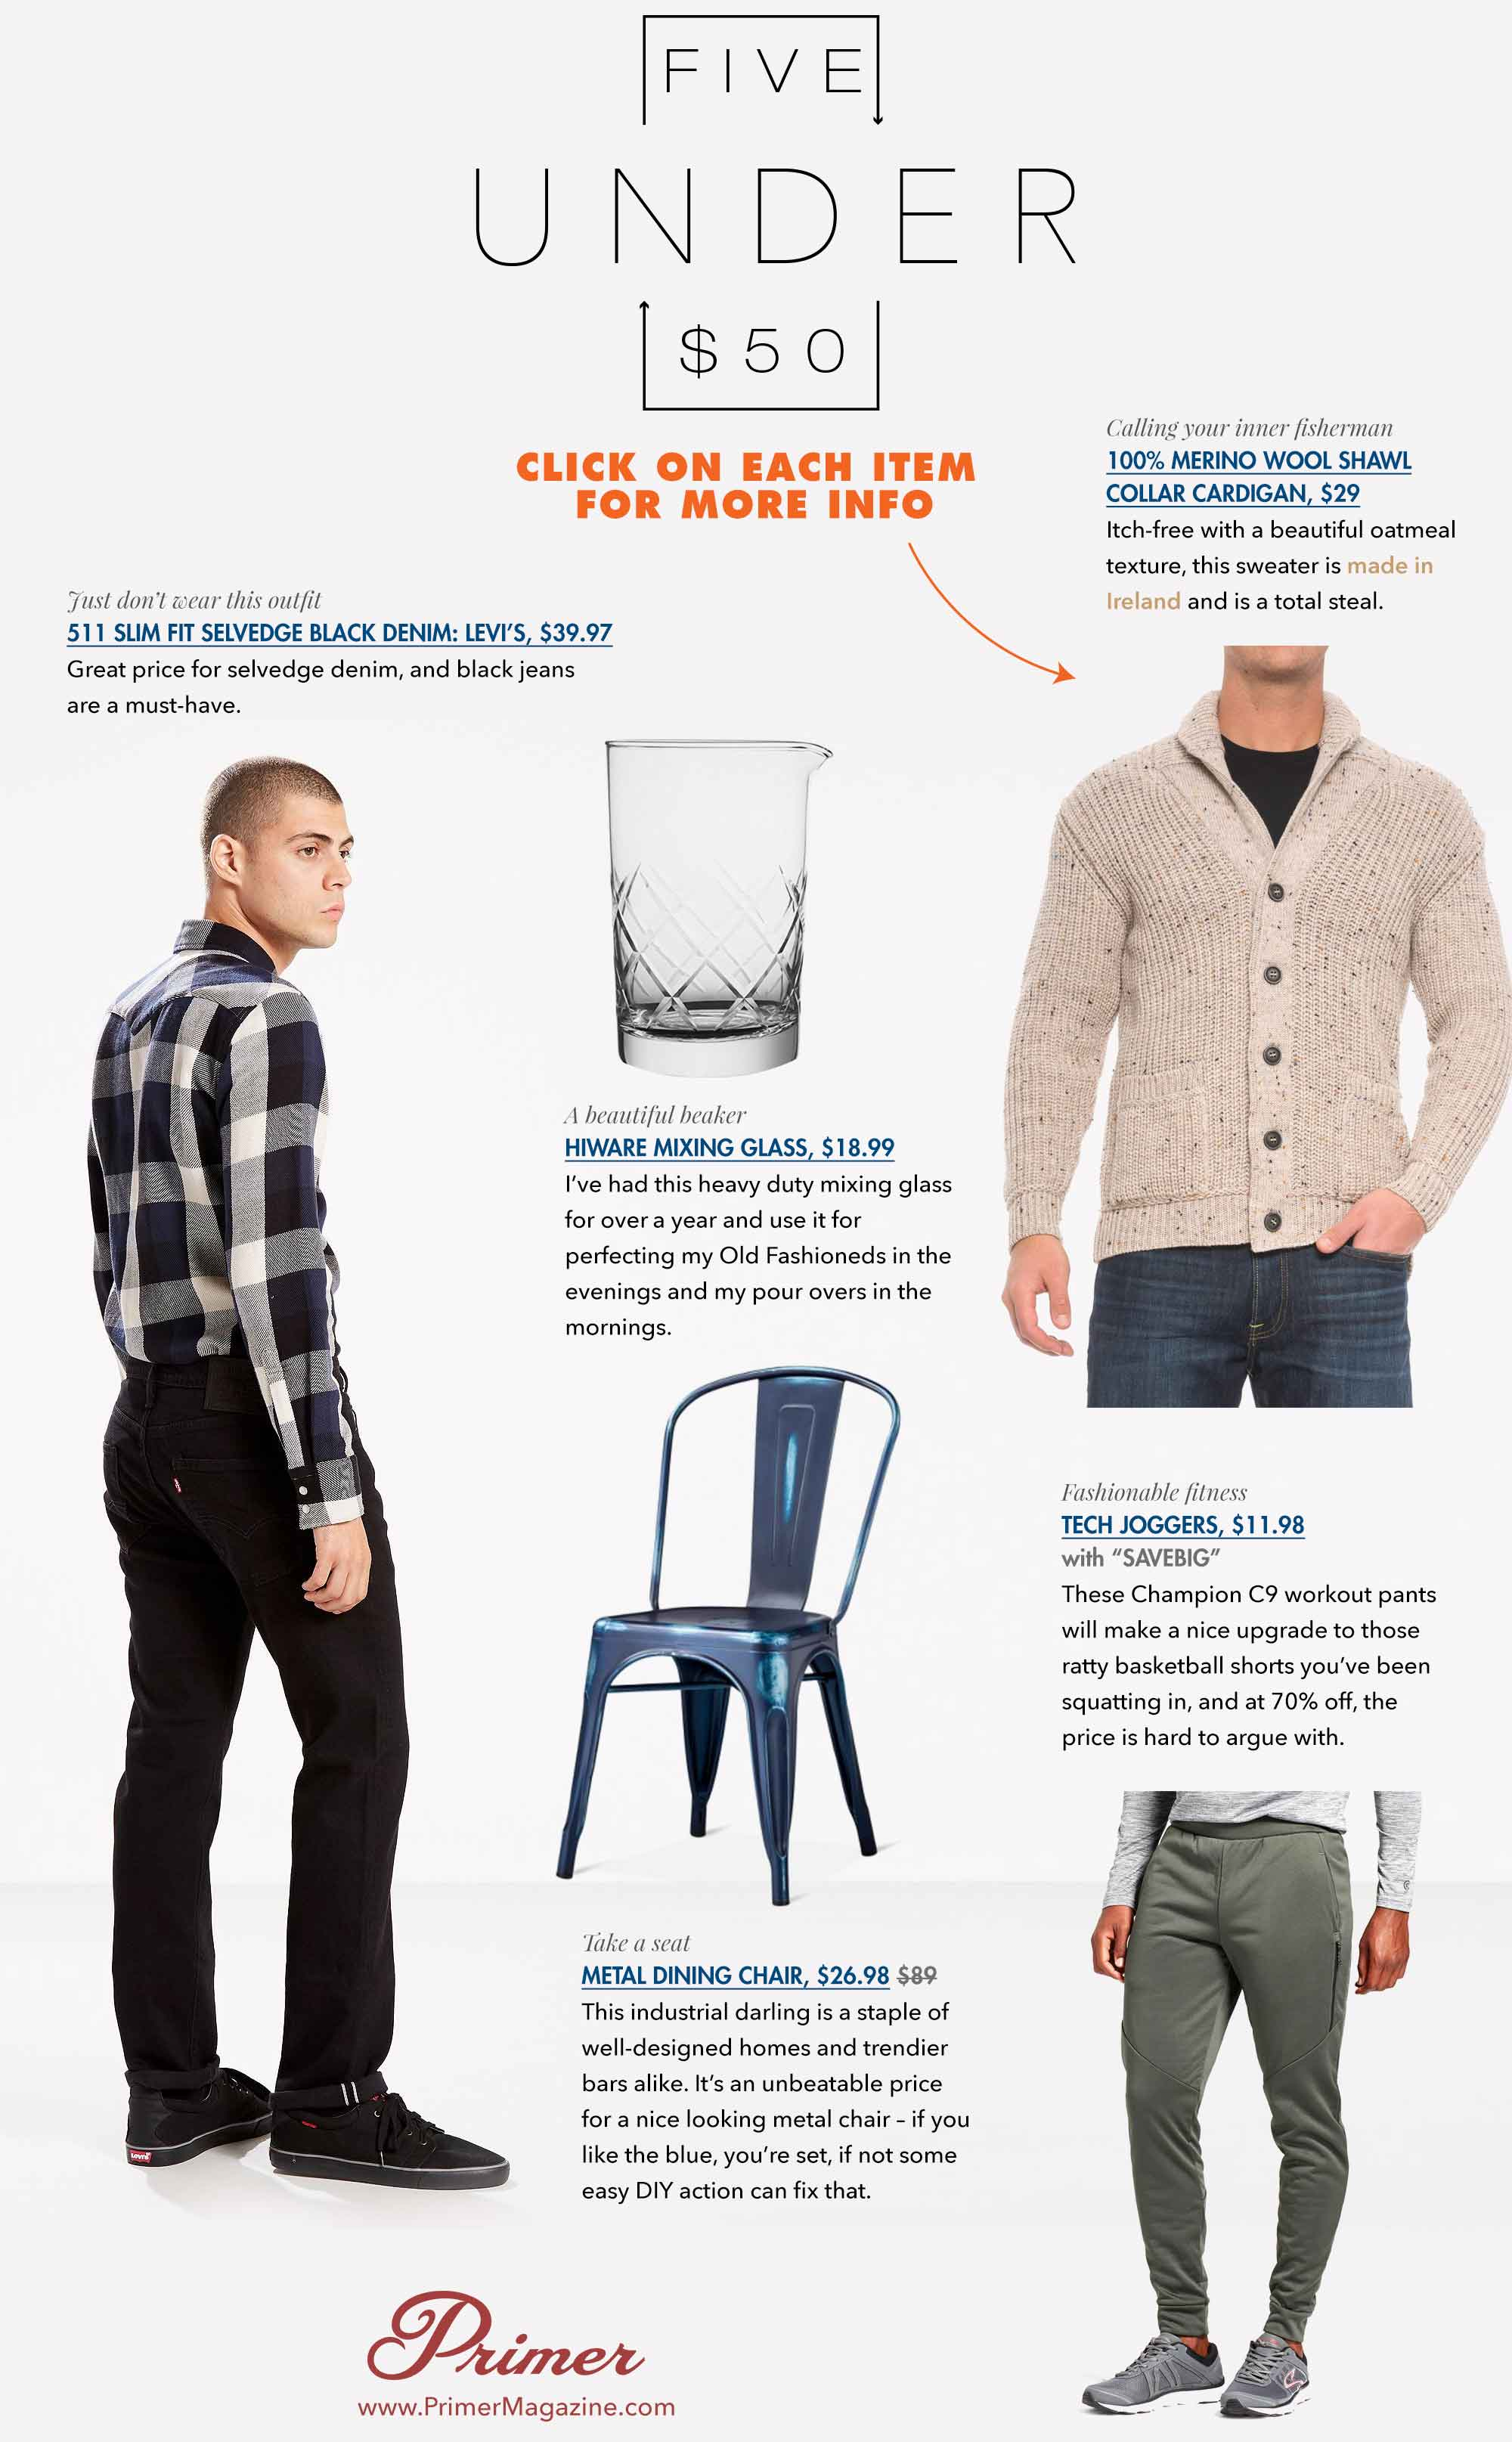 5 Under 50 graphic including cocktail class, chair, sweater, workout pants and jeans